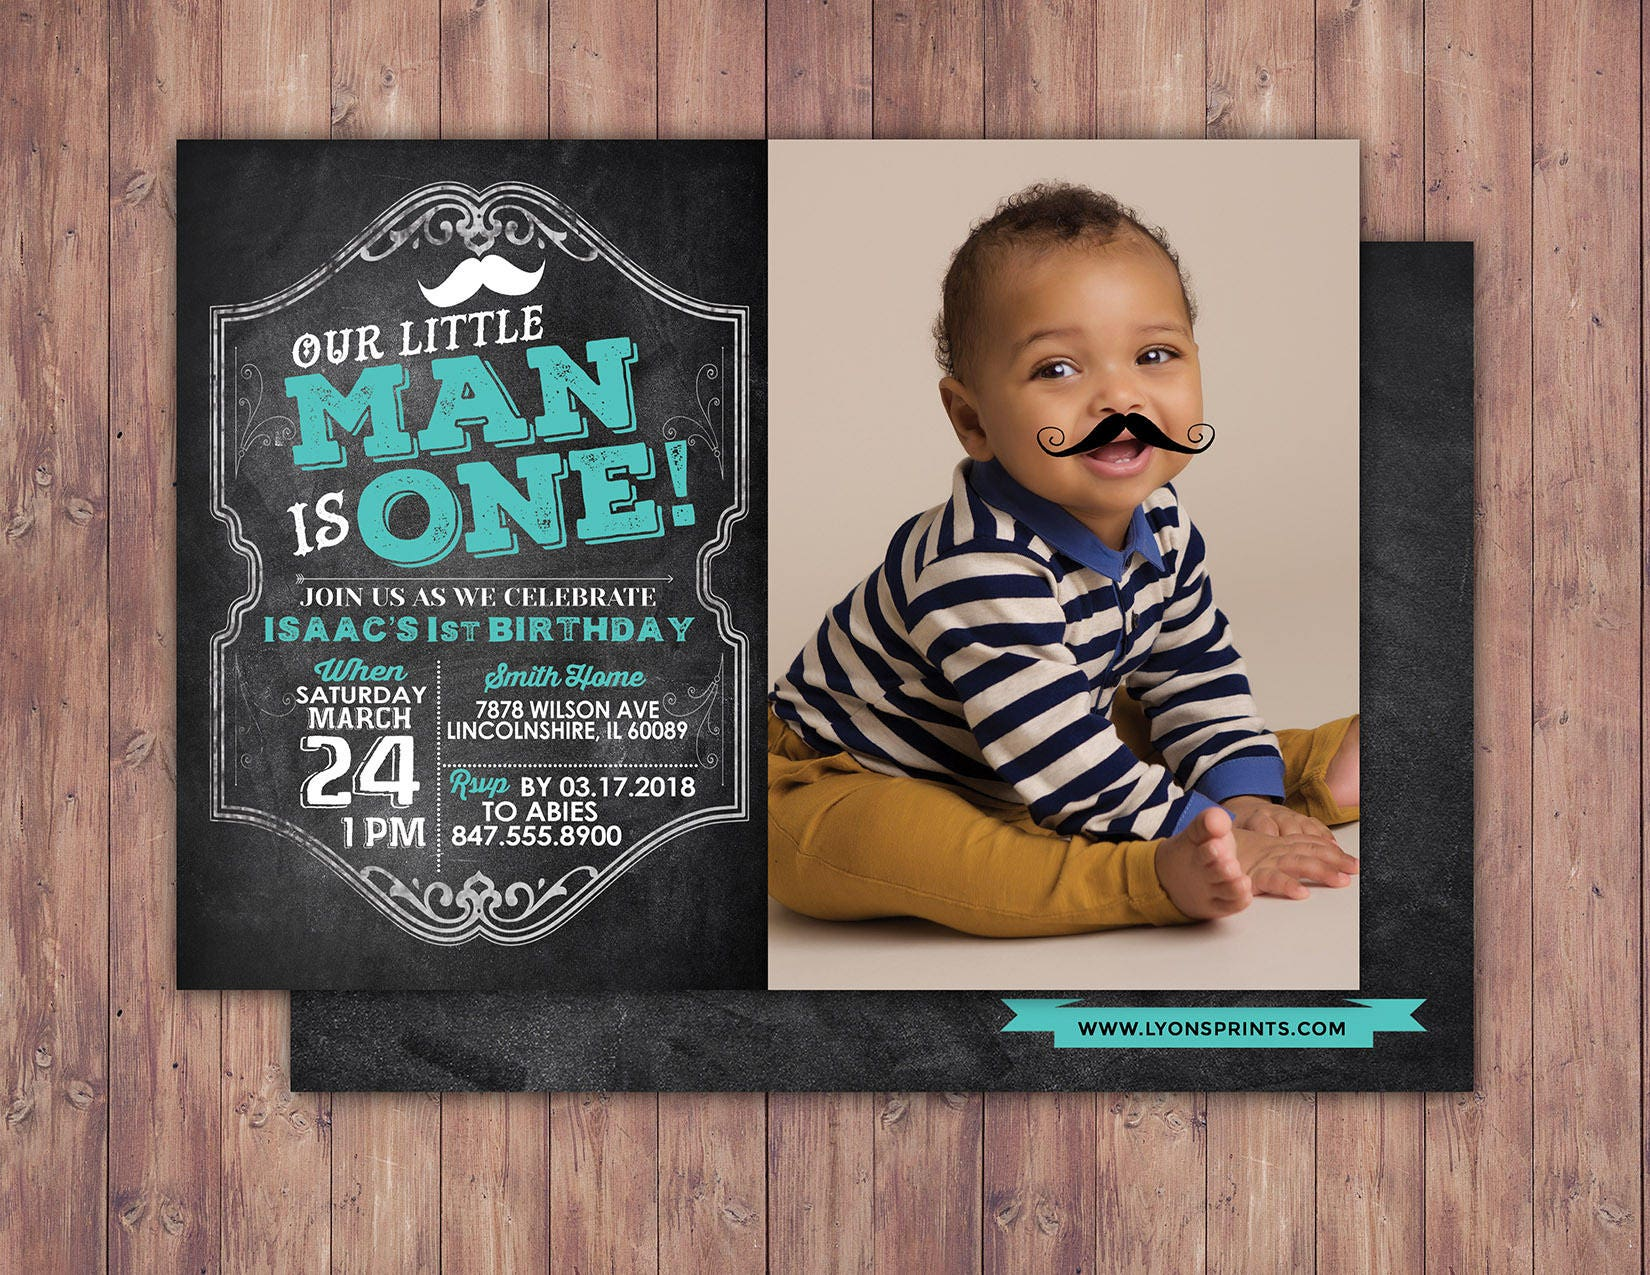 Mustache invitation little man birthday invitation first mustache invitation little man birthday invitation first birthday invitation mustache printable bowtie invitation boy birthday filmwisefo